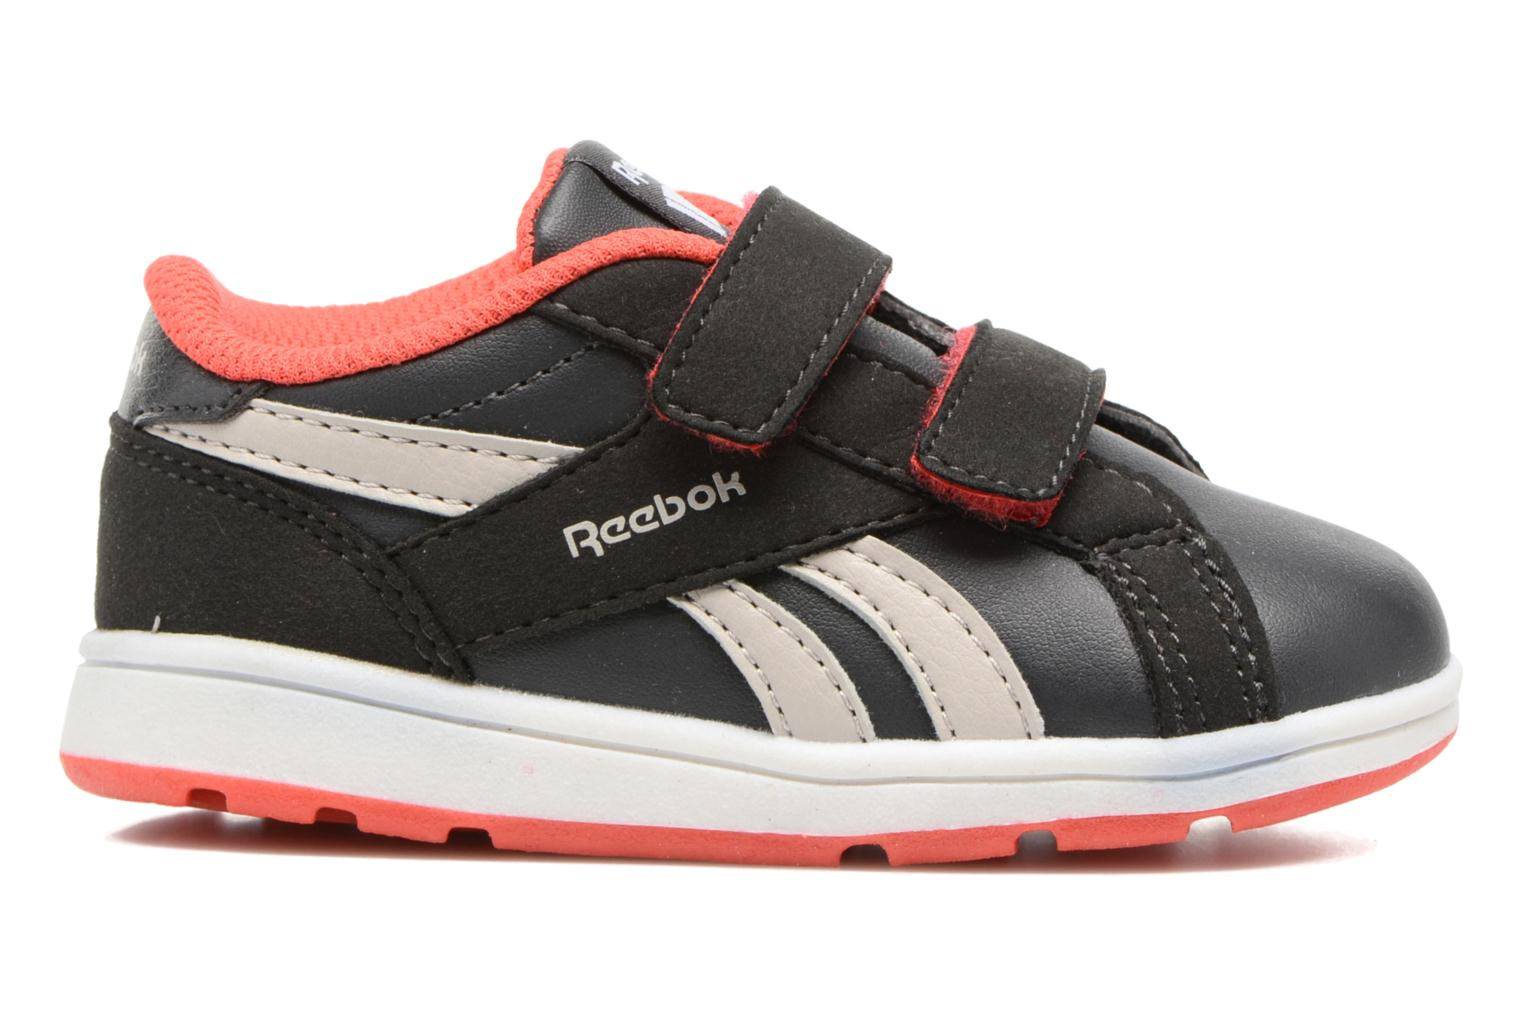 Reebok Royal Comp 2Ls  2V Coal/Sand Stone/Dayglow Red